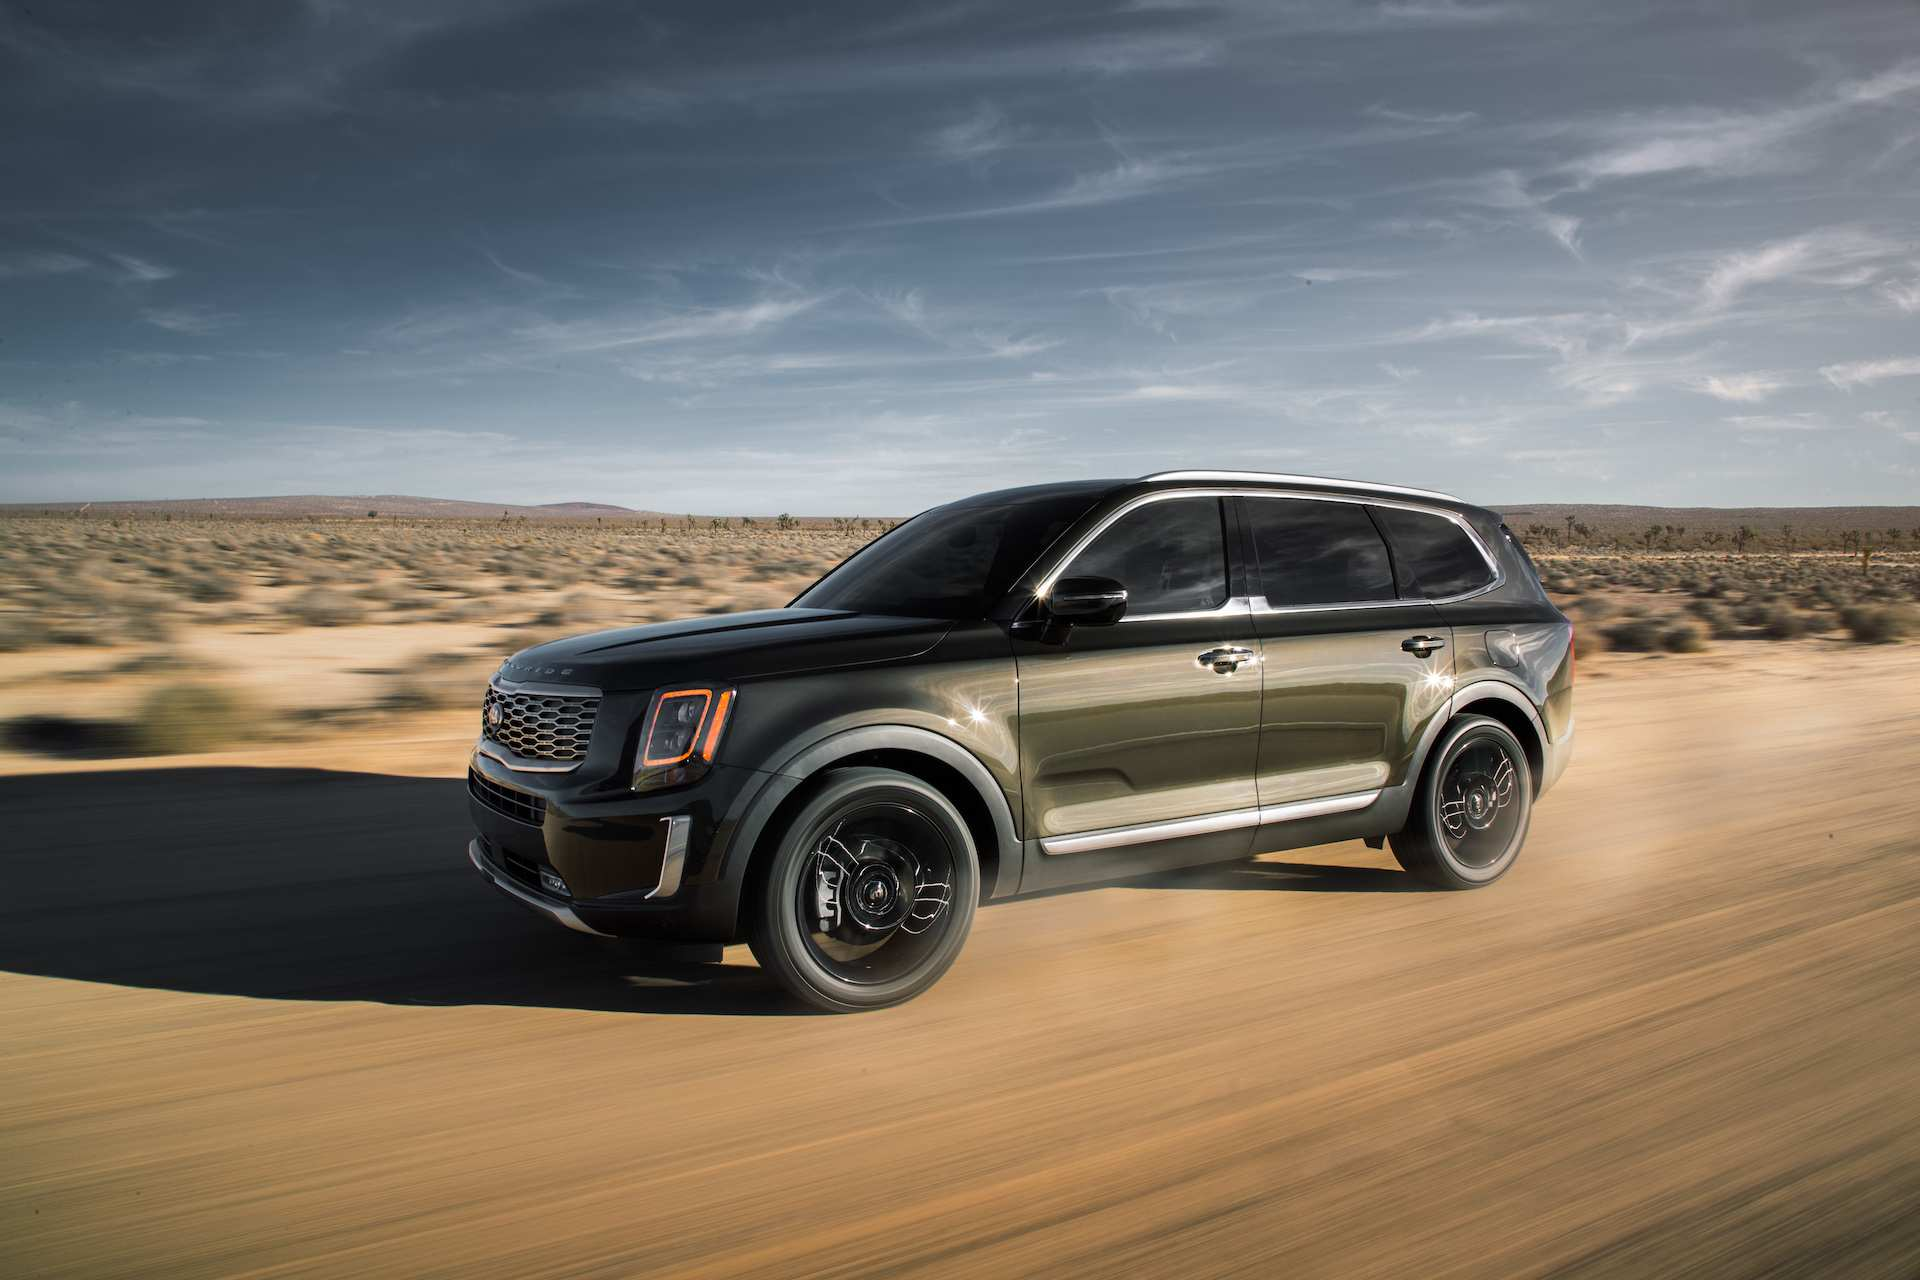 98 A Kia Telluride 2020 Interior Spy Shoot